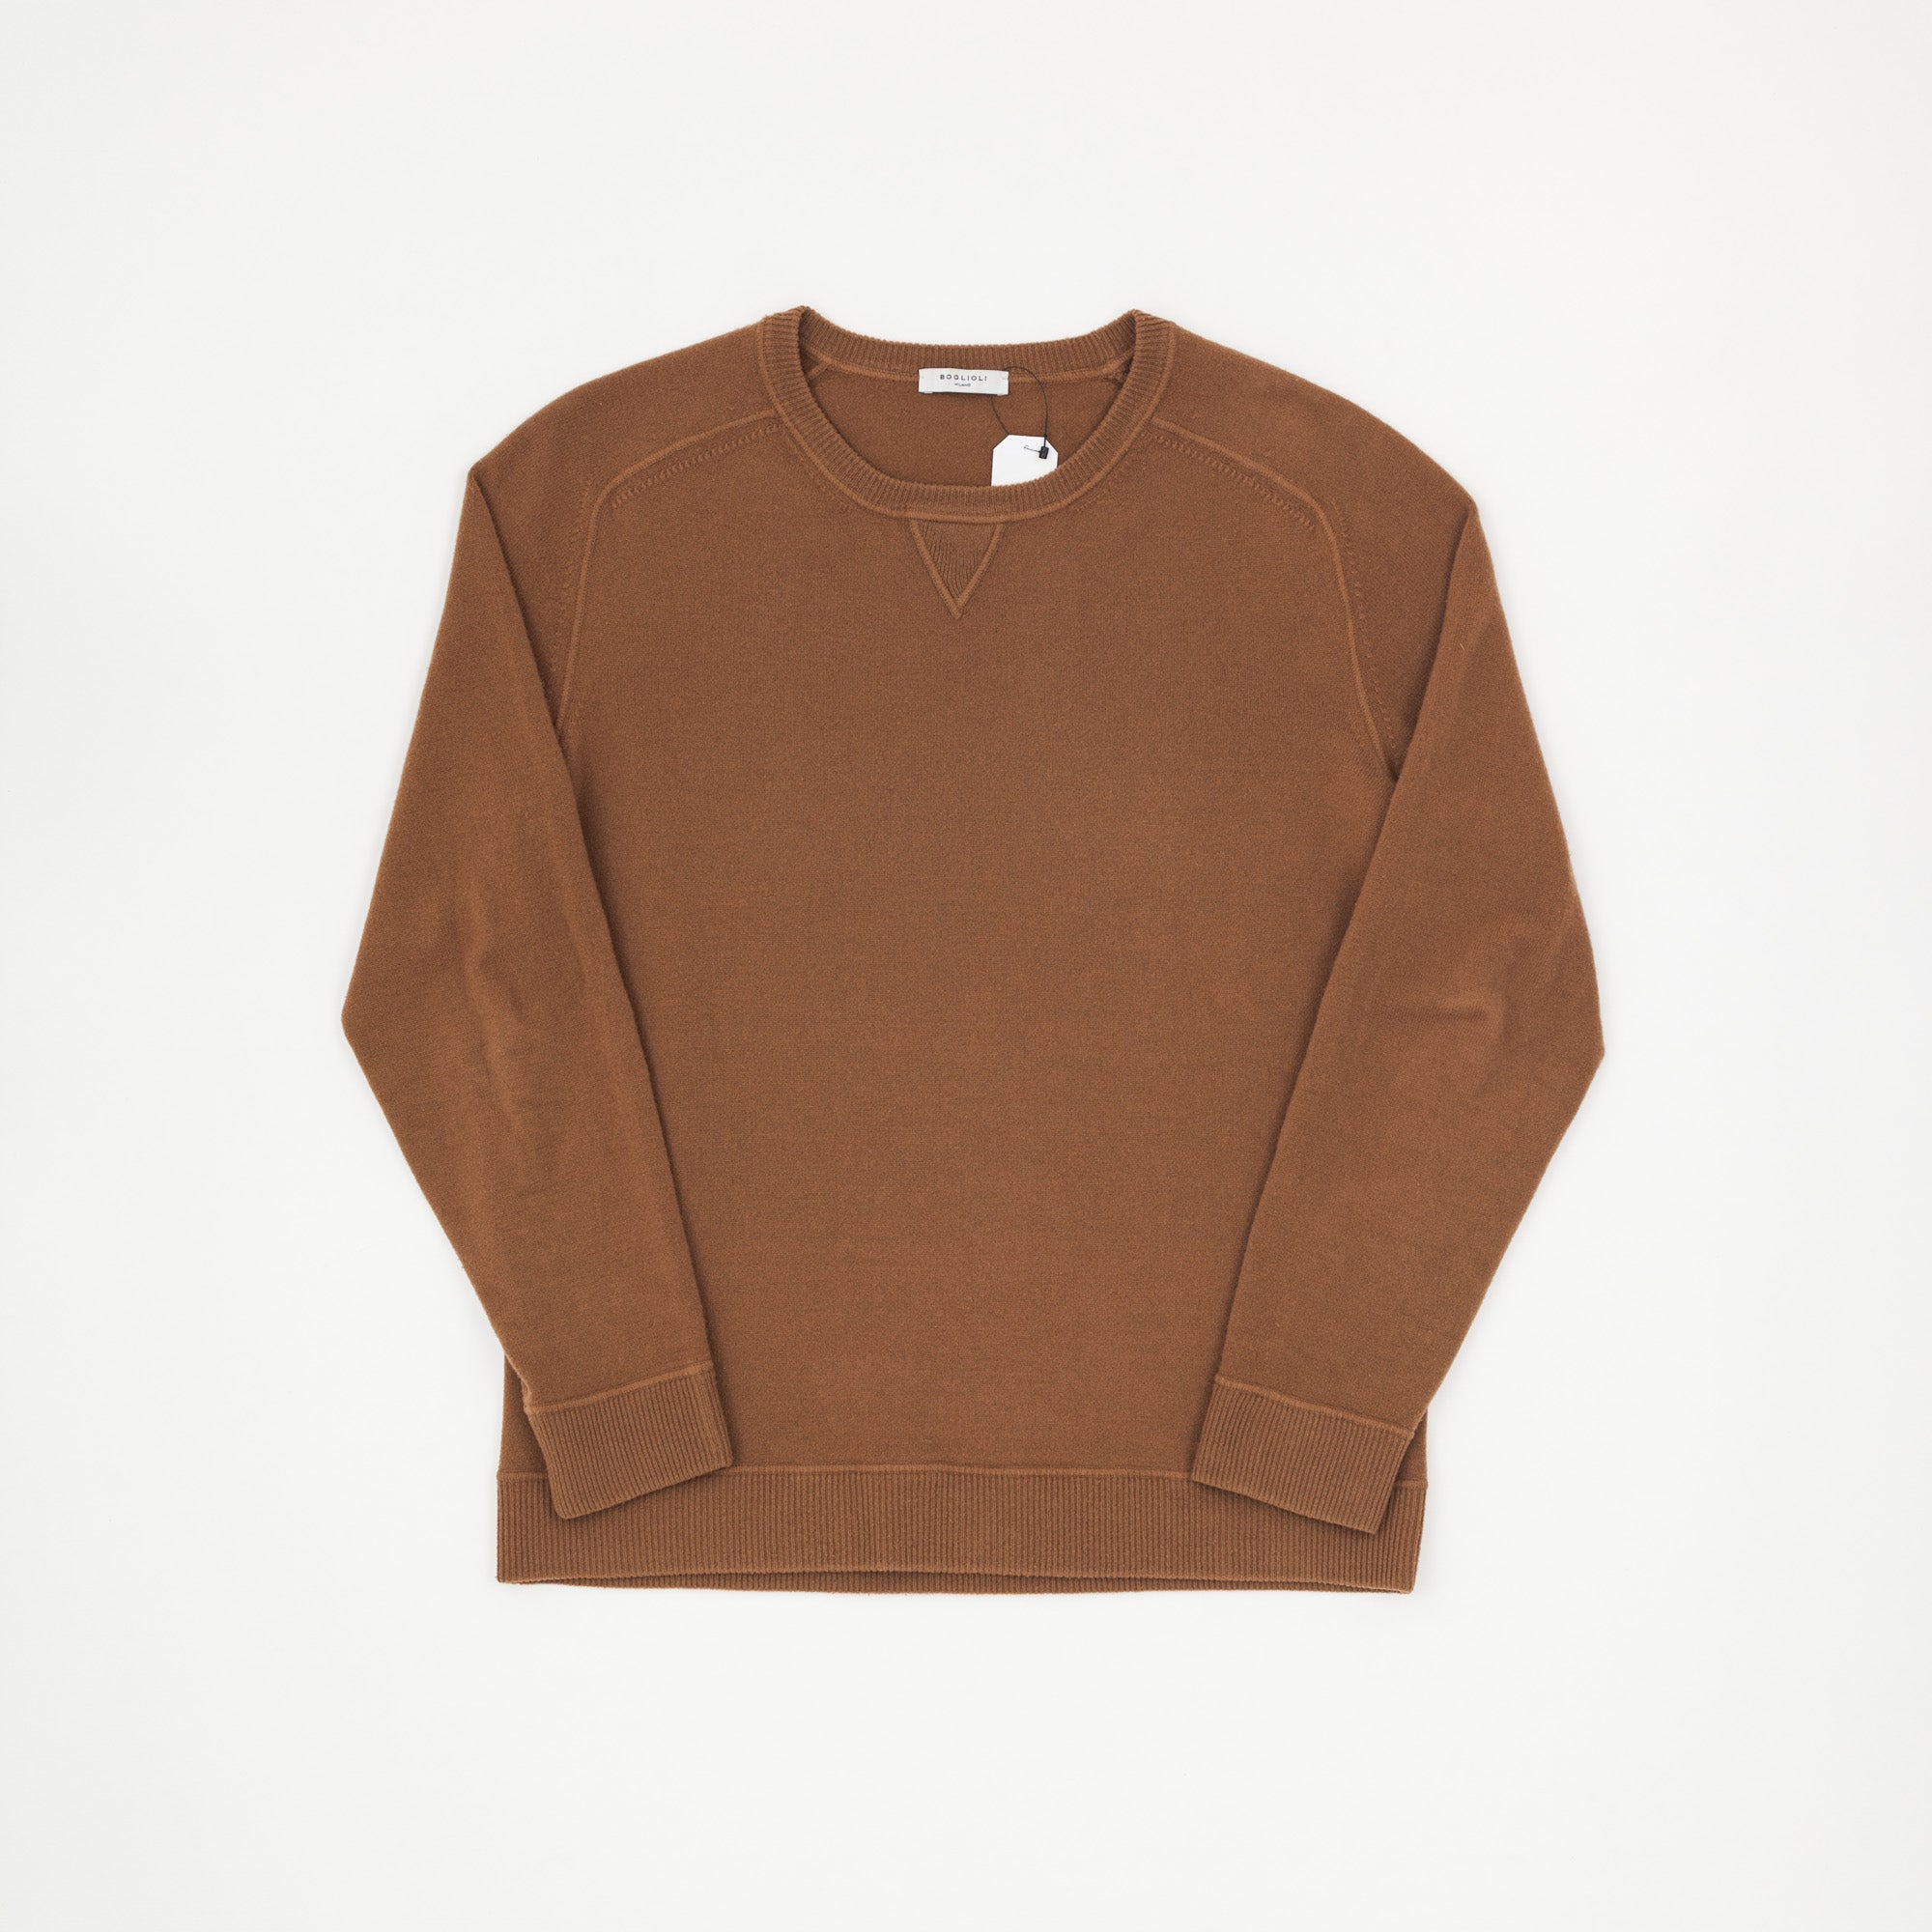 Boglioli Wool Knit Sweatshirt